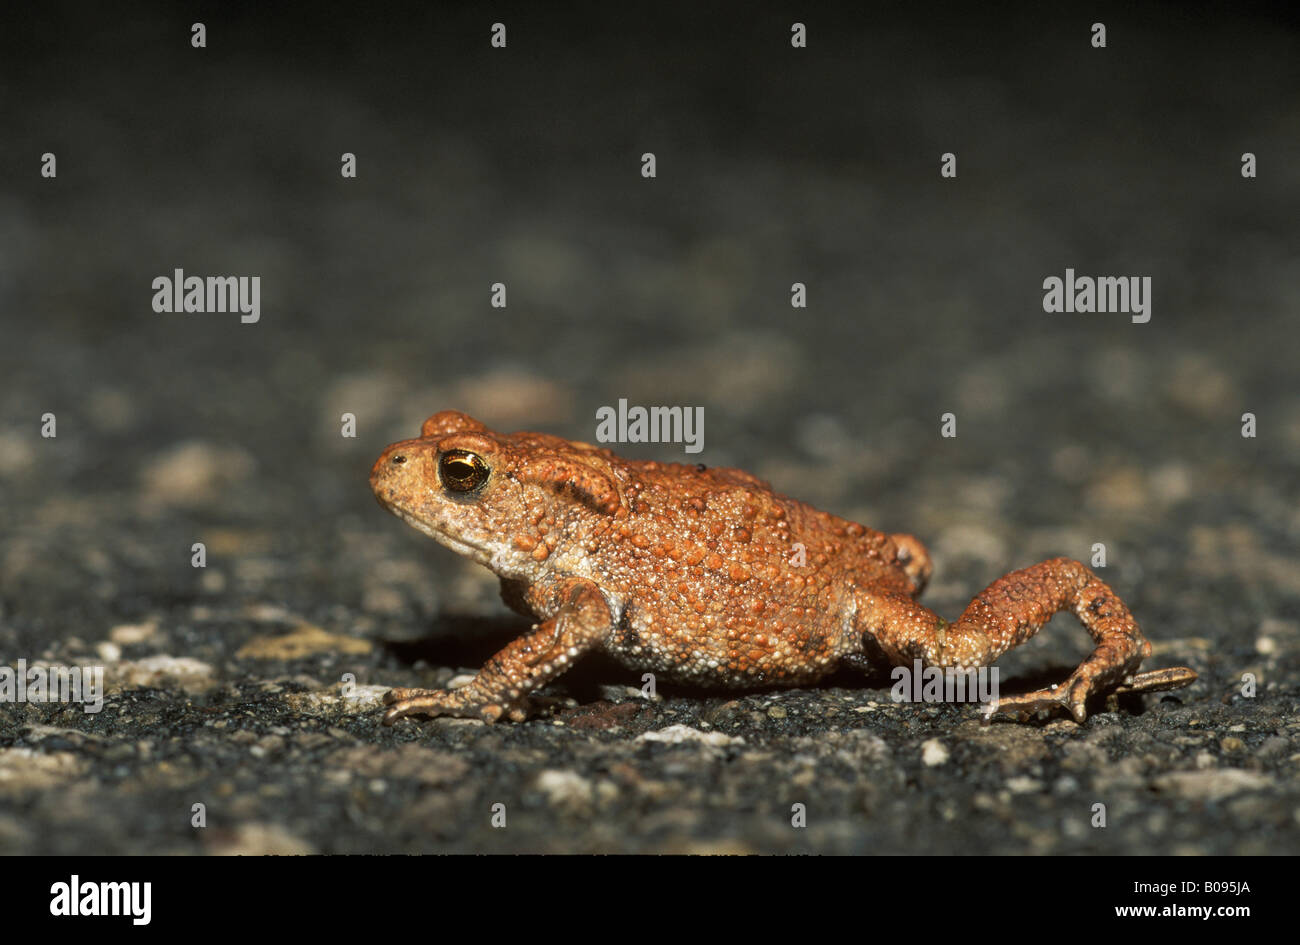 Young Common Toad (Bufo bufo) crossing a paved road Stock Photo